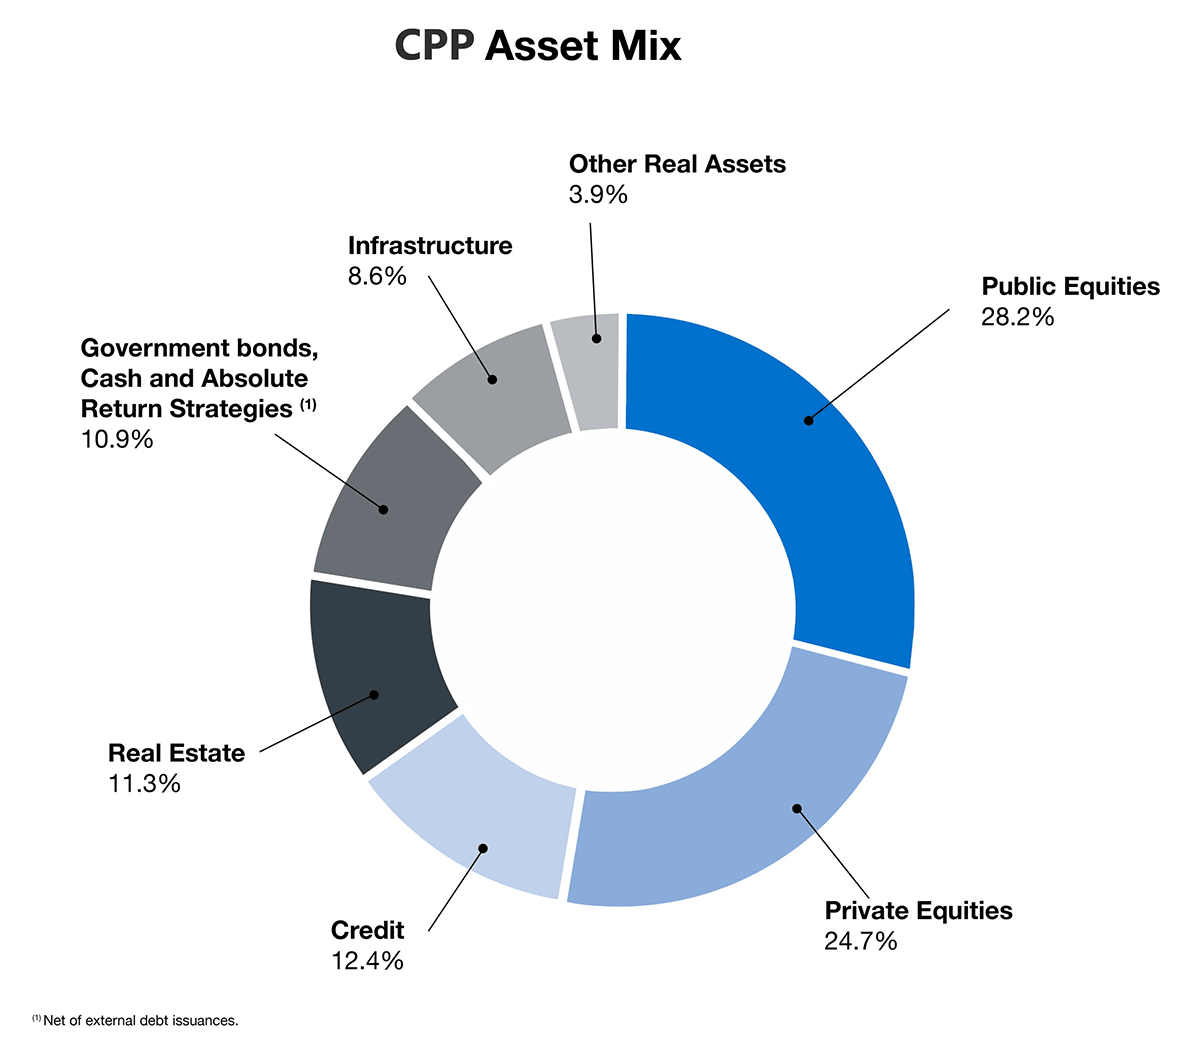 CPP Asset Mix